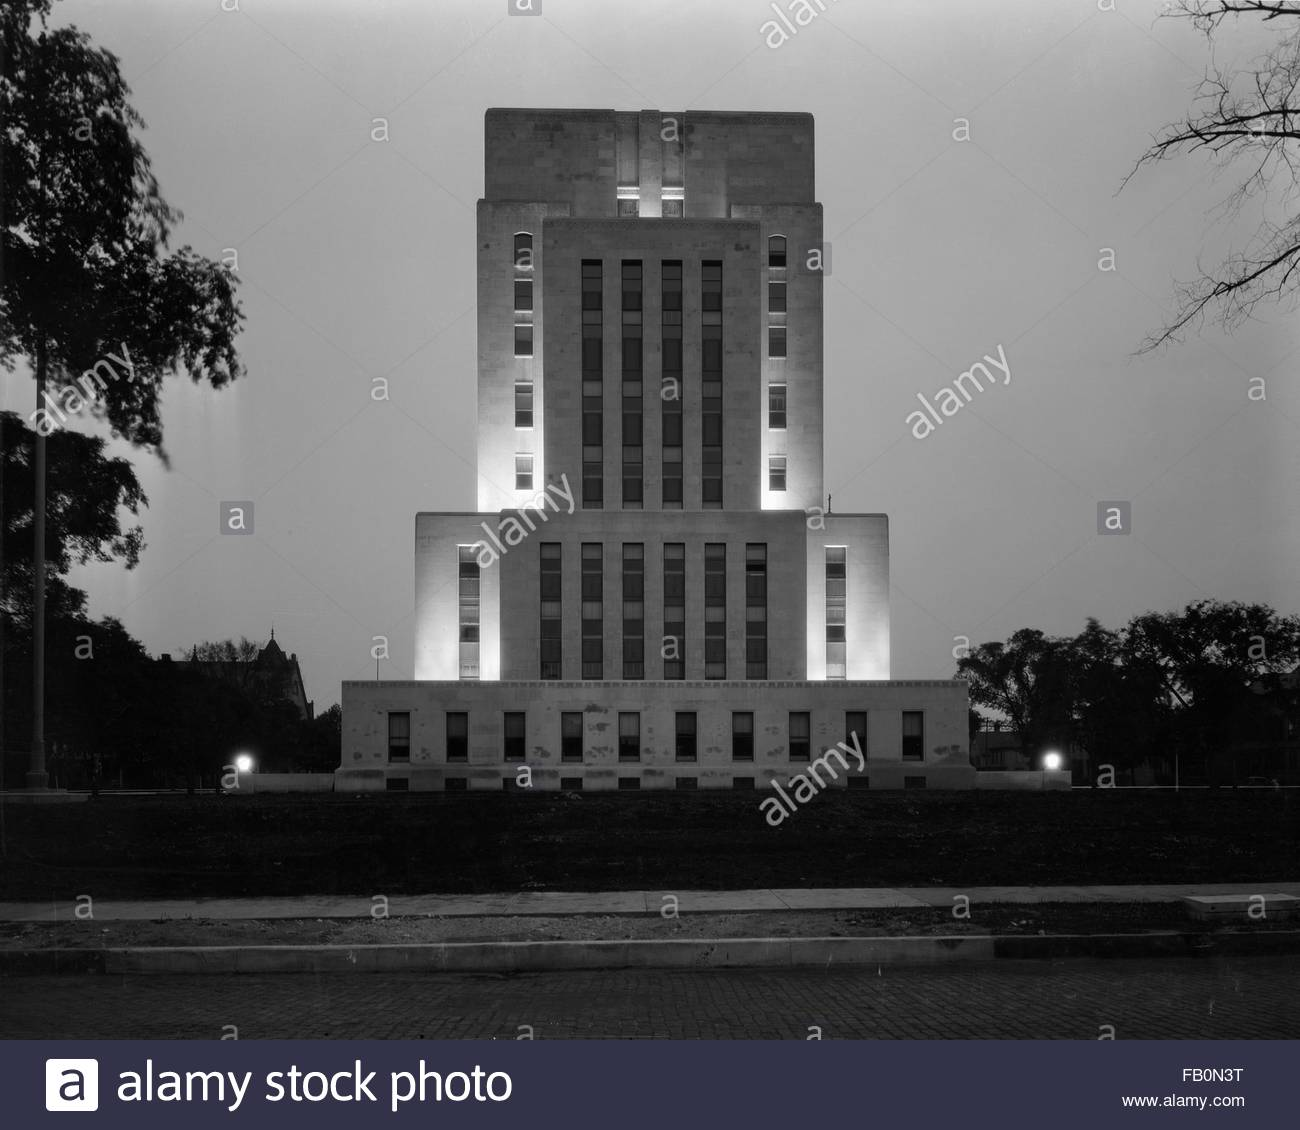 Exterior, building in the evening with lighting. Racine County Court House in Racine (Wis.), 1932 Mar. 8. - Stock Image